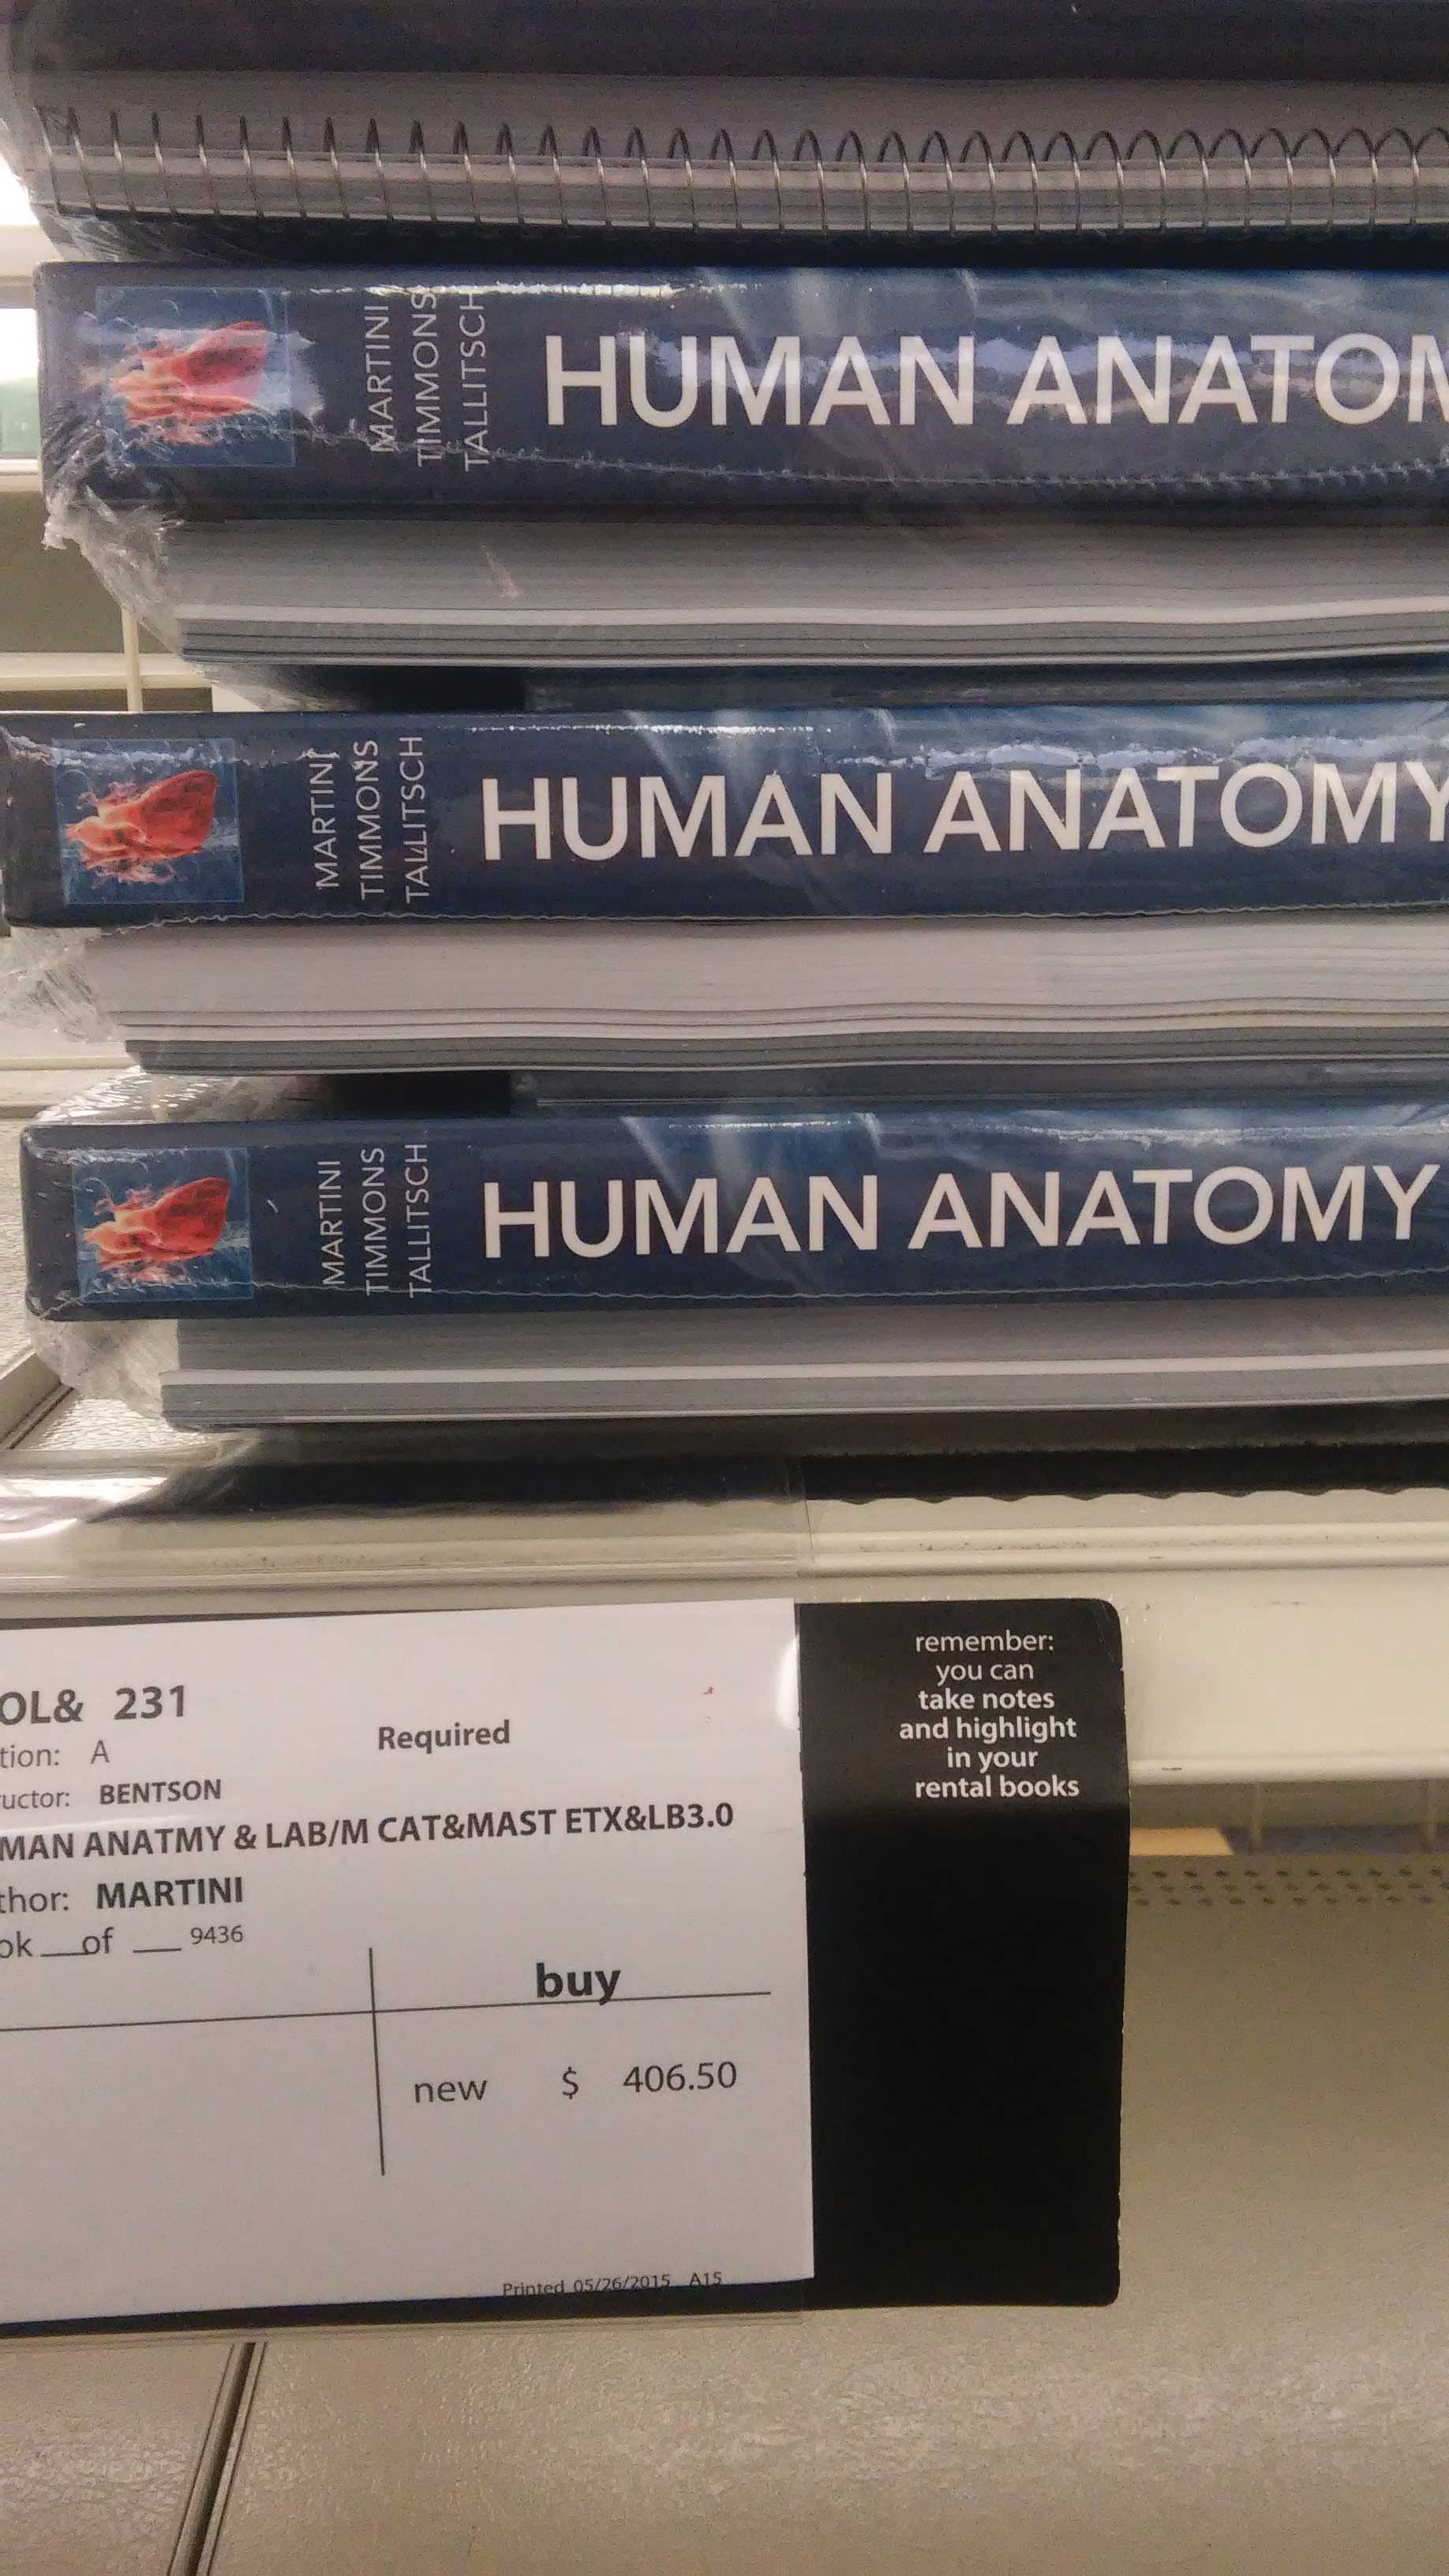 A prime example of the audacious prices textbooks. One anatomy textbook costing $406.50.